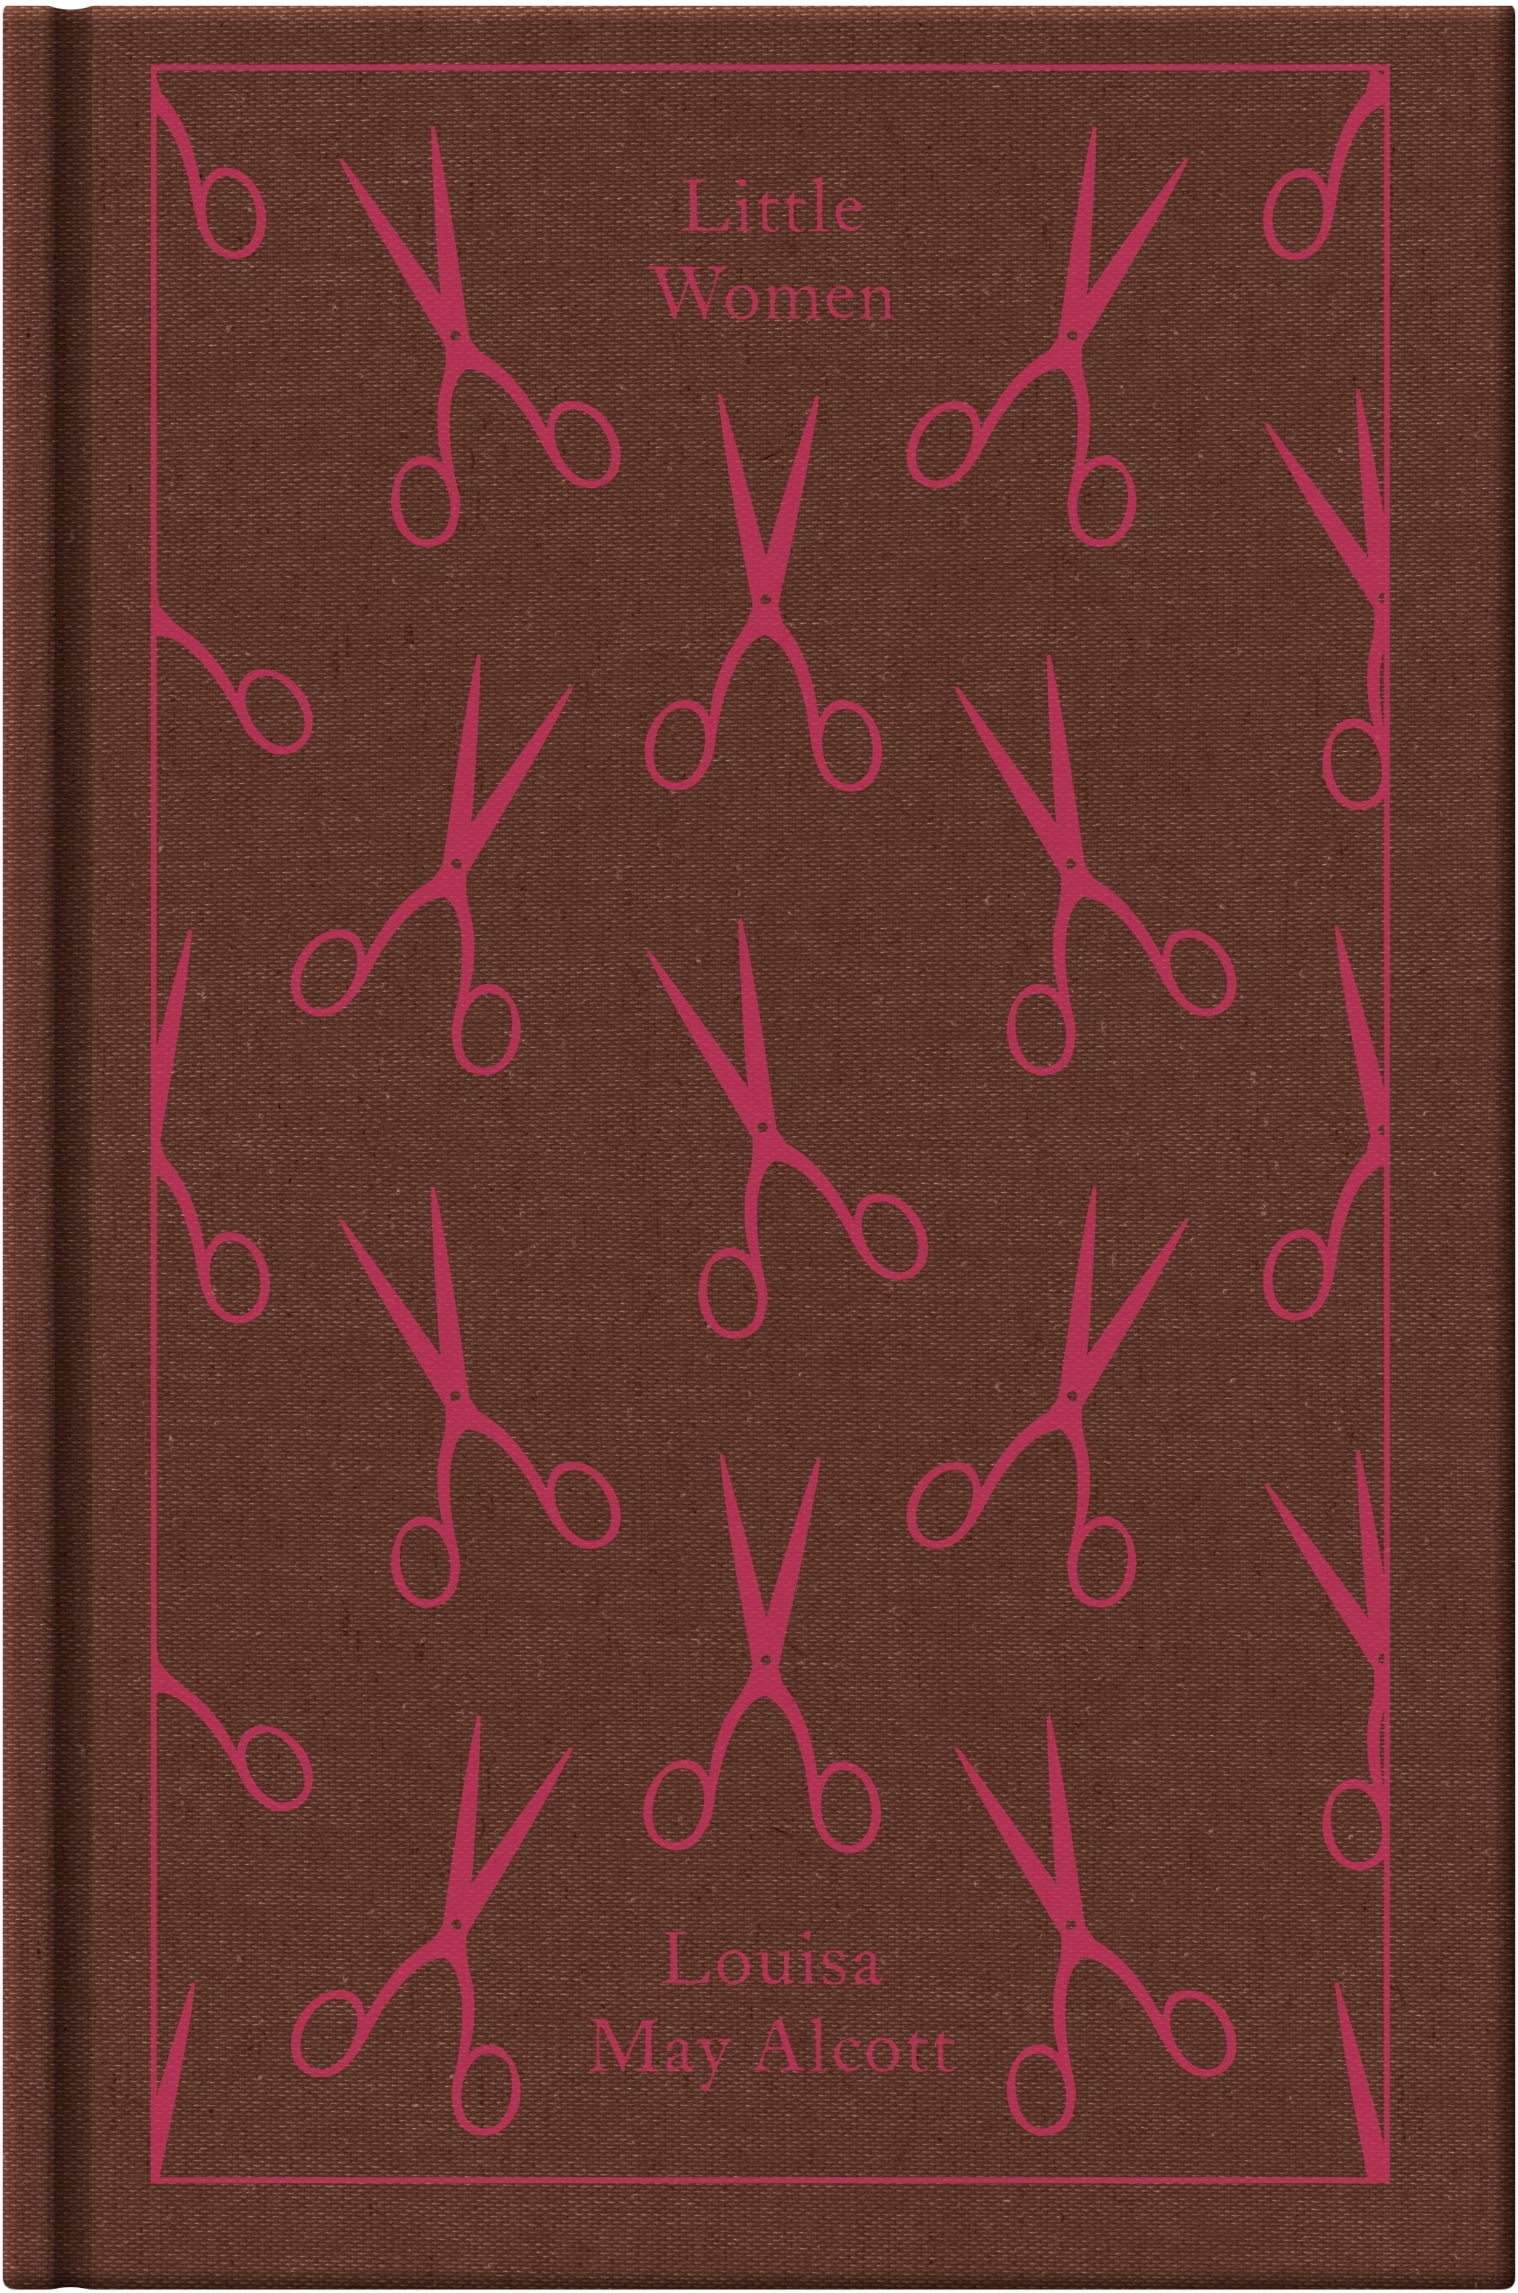 Book Cover Design Cost Uk : Little women design by coralie bickford smith penguin